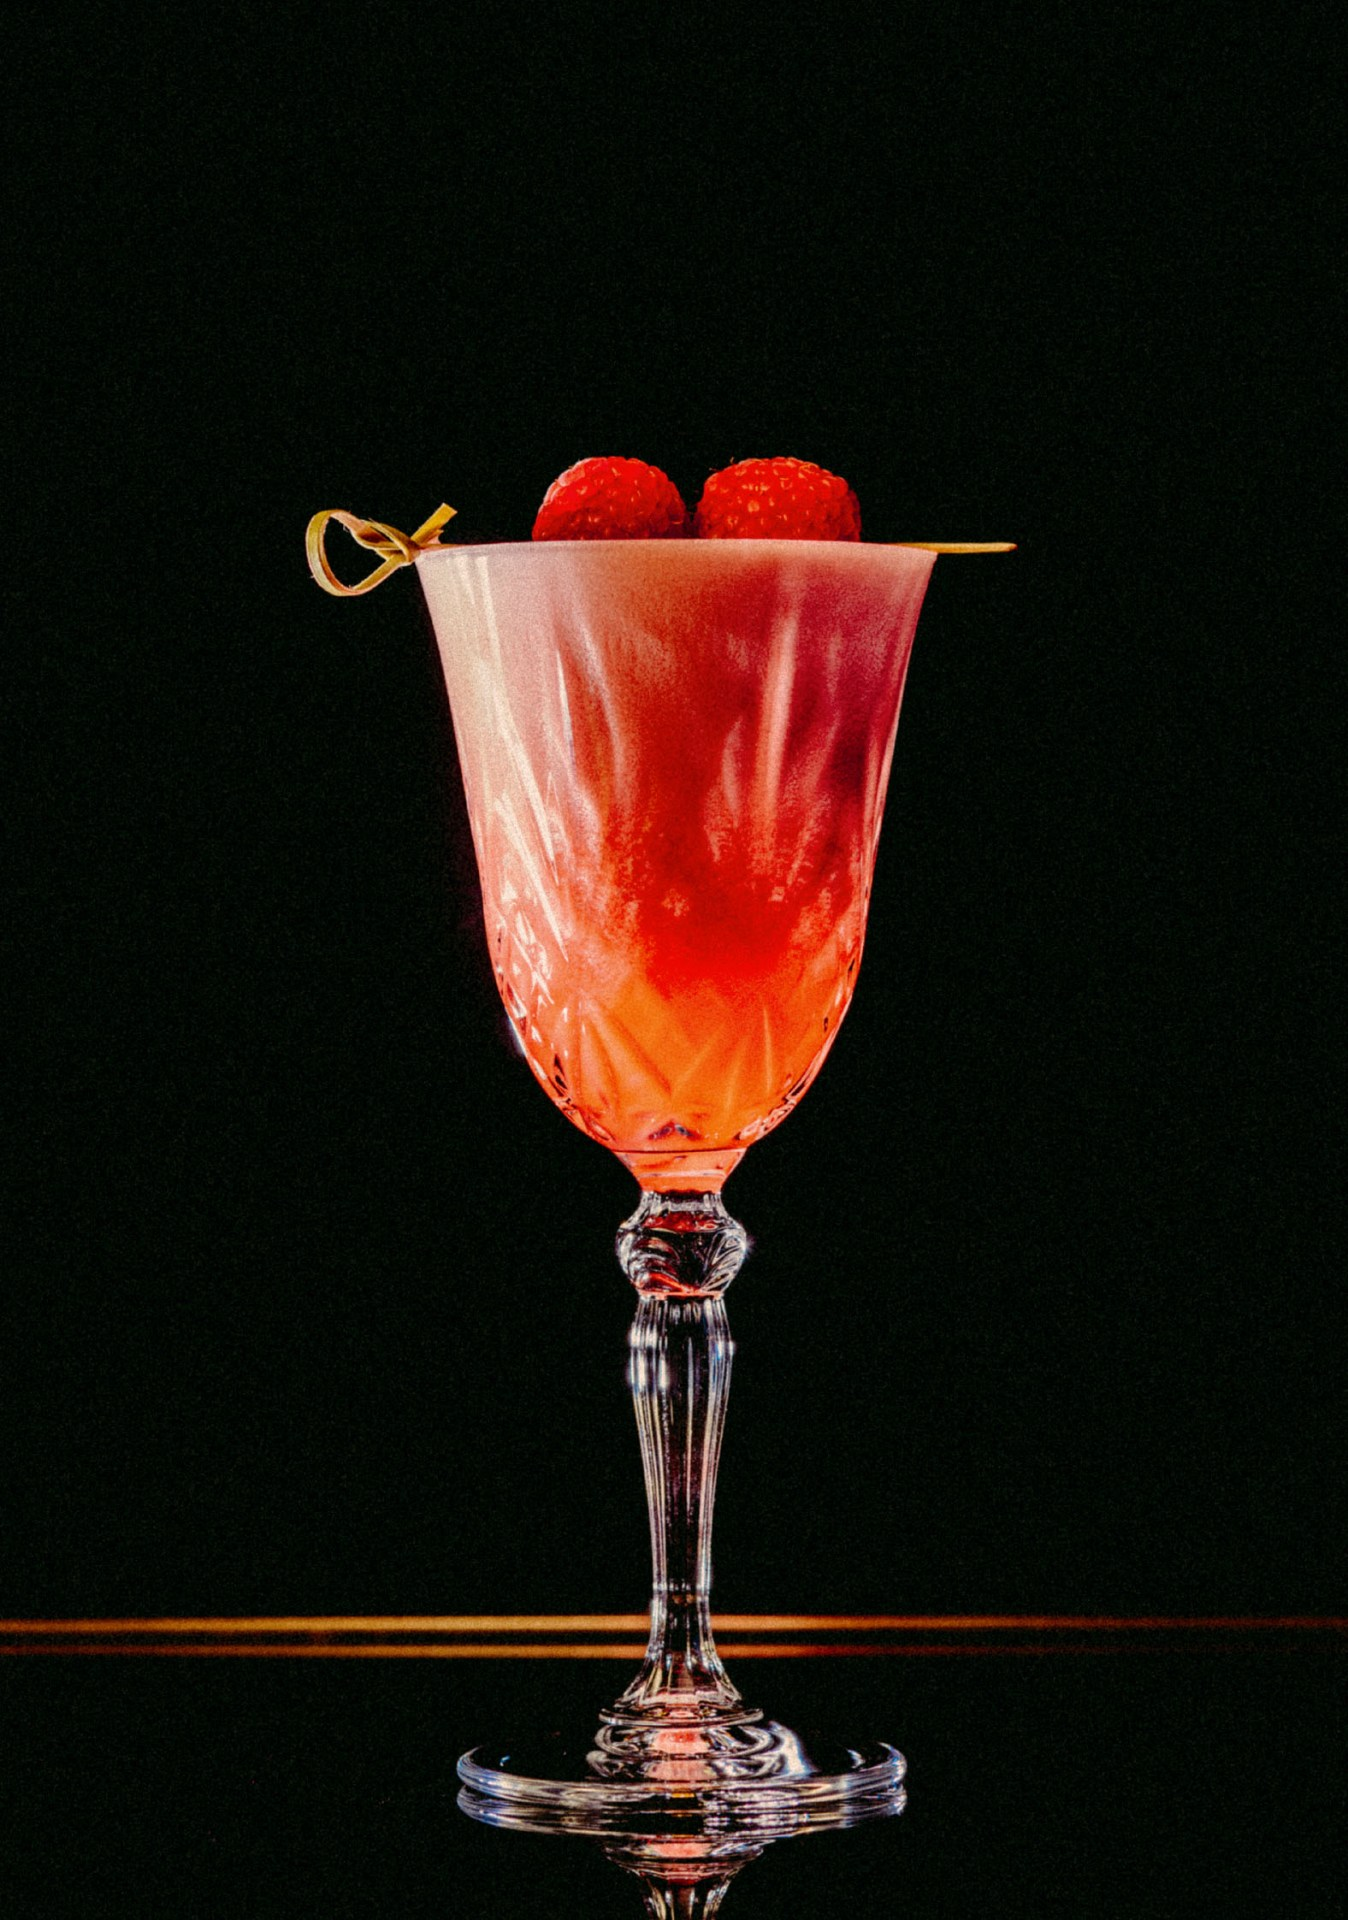 Recipe: 6cl Plymouth Gin 3cl Lemon Juice 1.5cl Sugar Syrup Raspberries Egg White